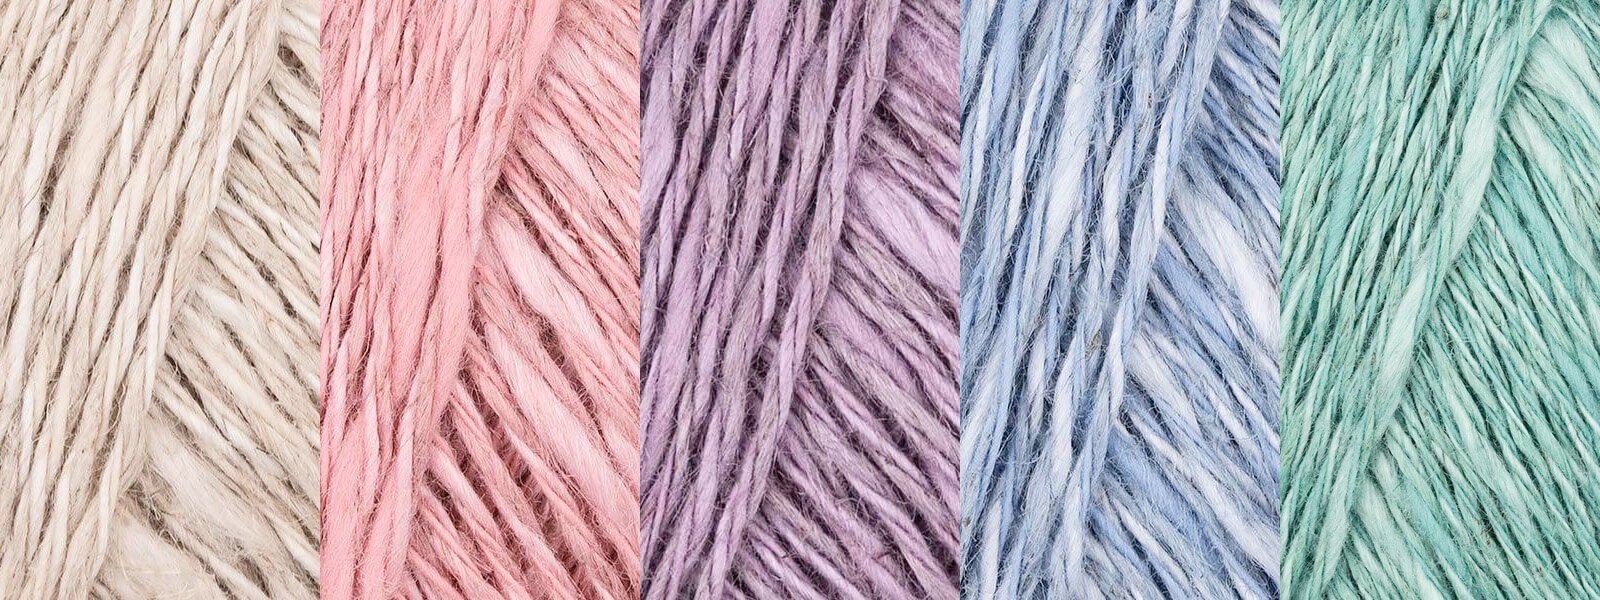 Natura linen is a linen blend yarn available in a range of icy pastel colors at LoveCrafts.